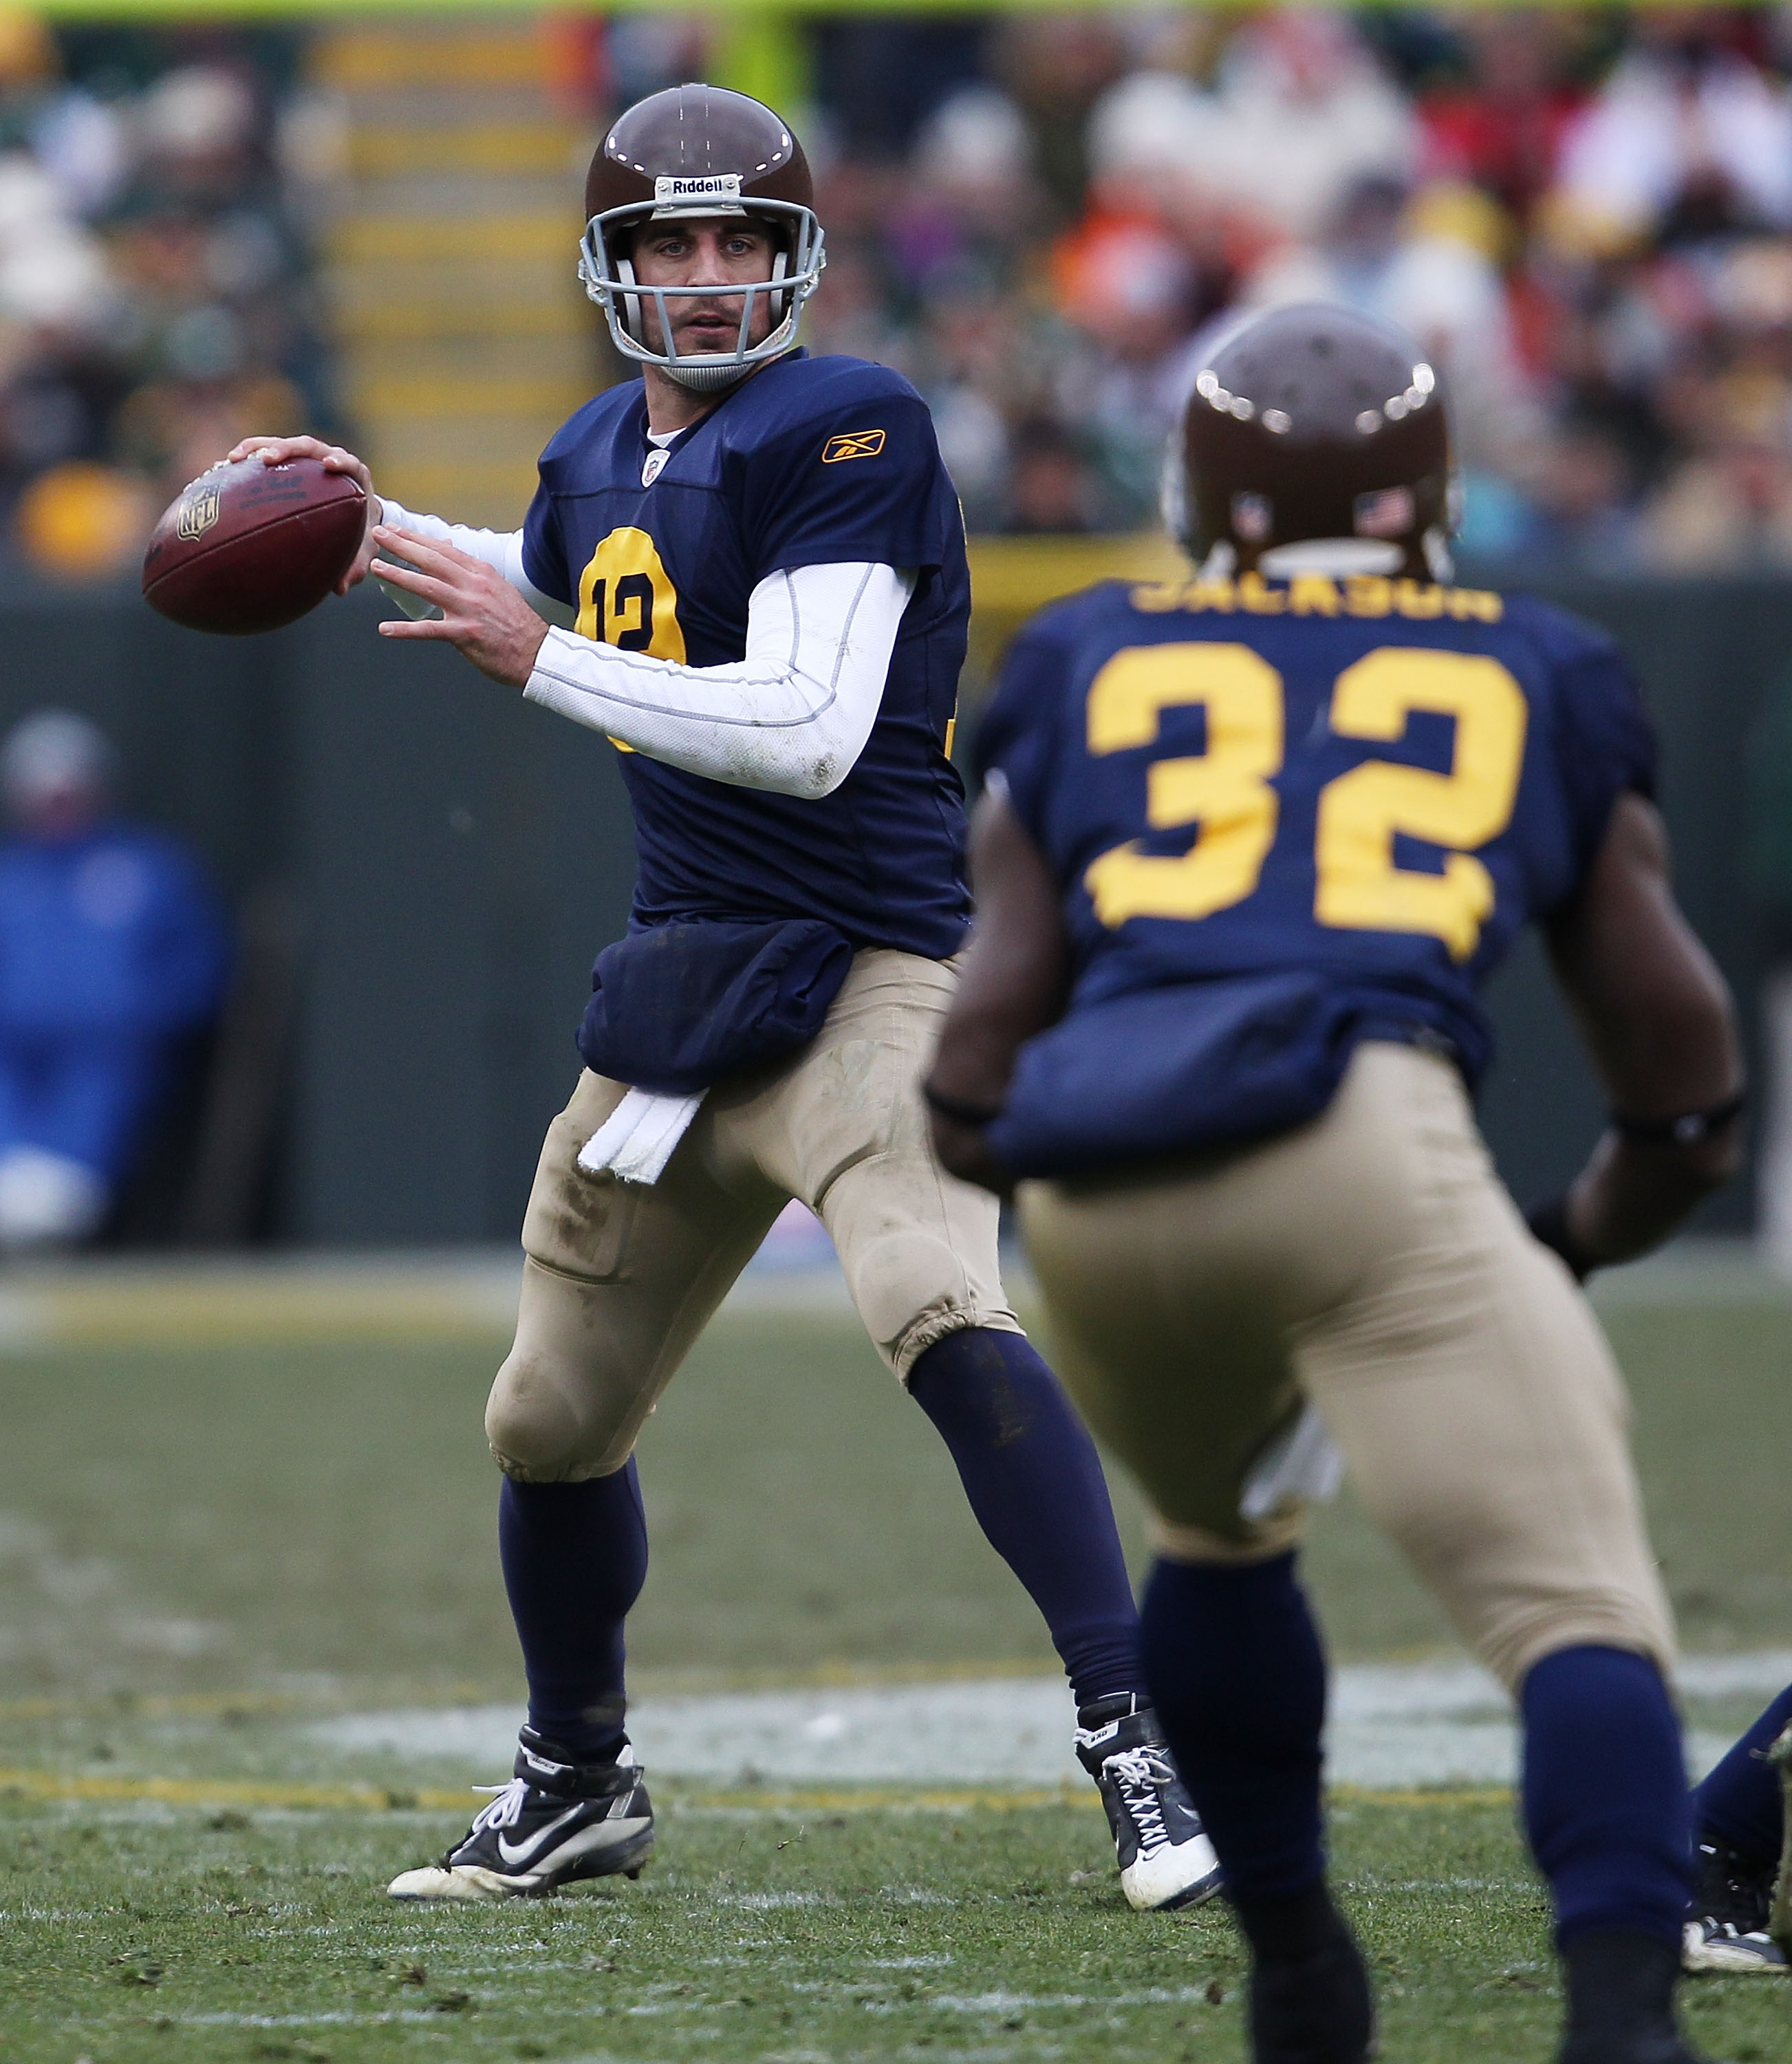 GREEN BAY, WI - DECEMBER 05: Aaron Rodgers #12 of the Green Bay Packers throws a pass to teammate Brandon Jakcson #32 against the San Francisco 49ers at Lambeau Field on December 5, 2010 in Green Bay, Wisconsin. The Packers defeated the 49ers 34-16. (Phot